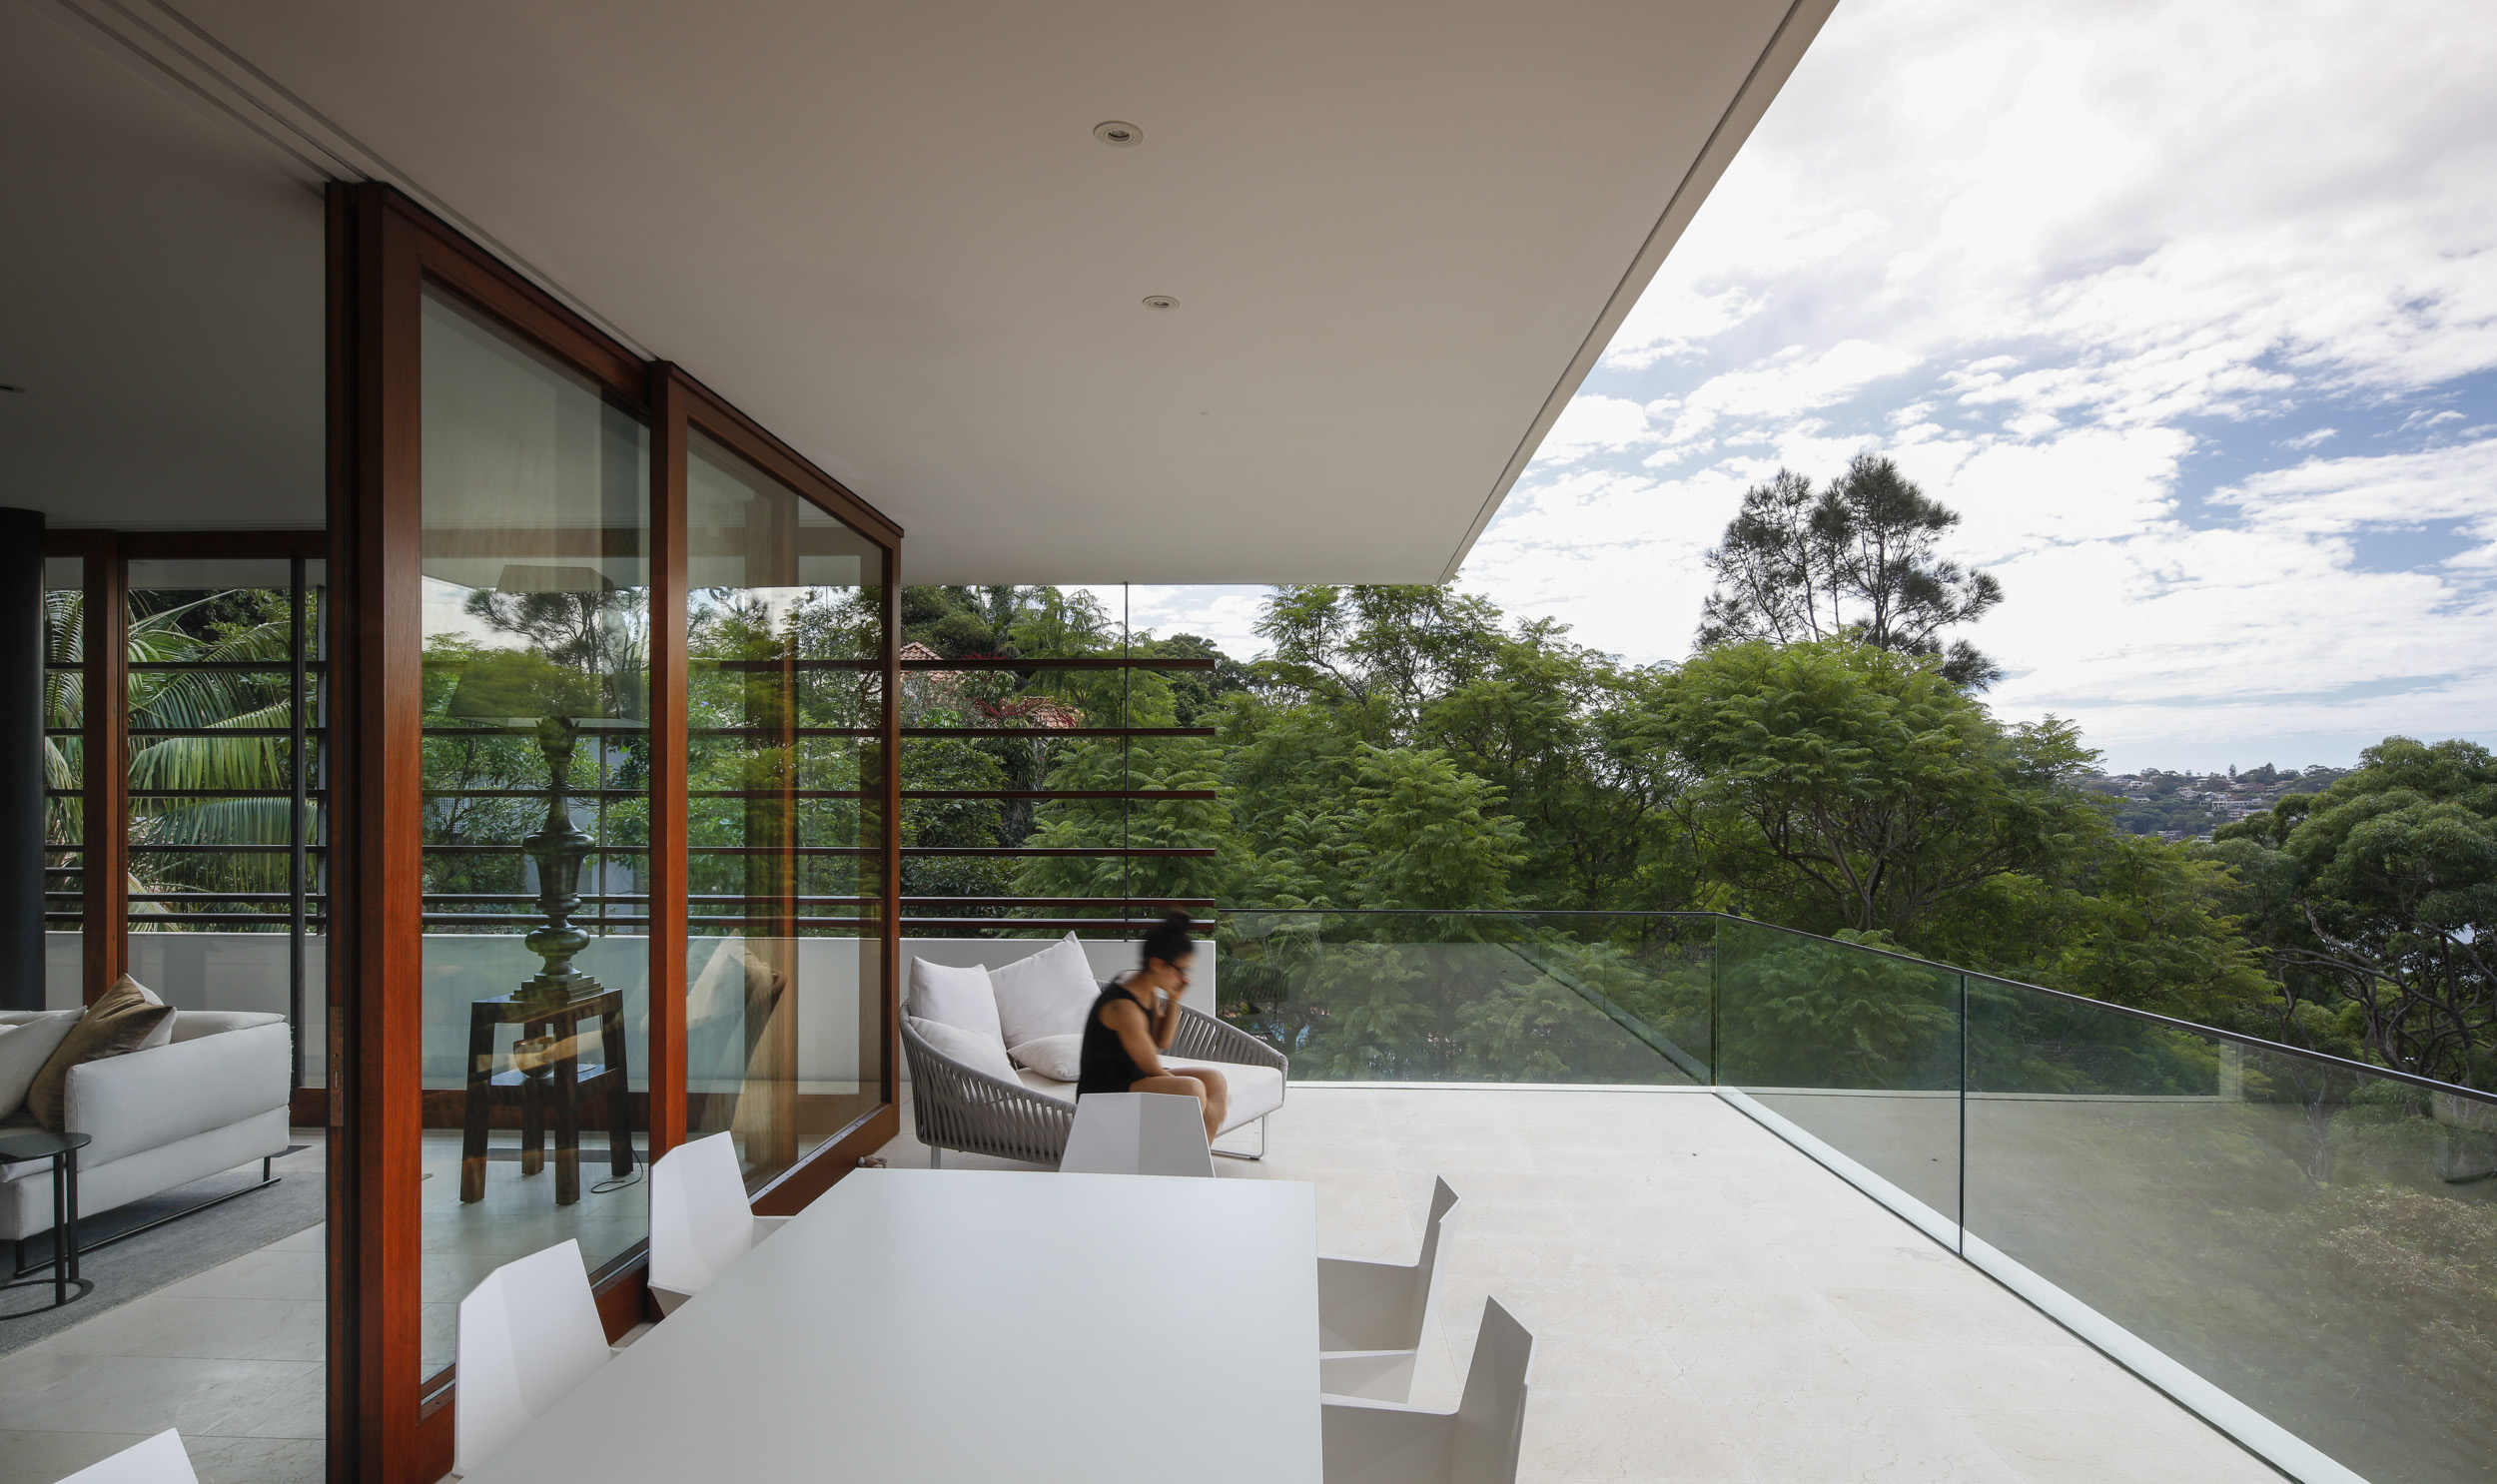 residential_architect_photographer_sydney_28.jpg